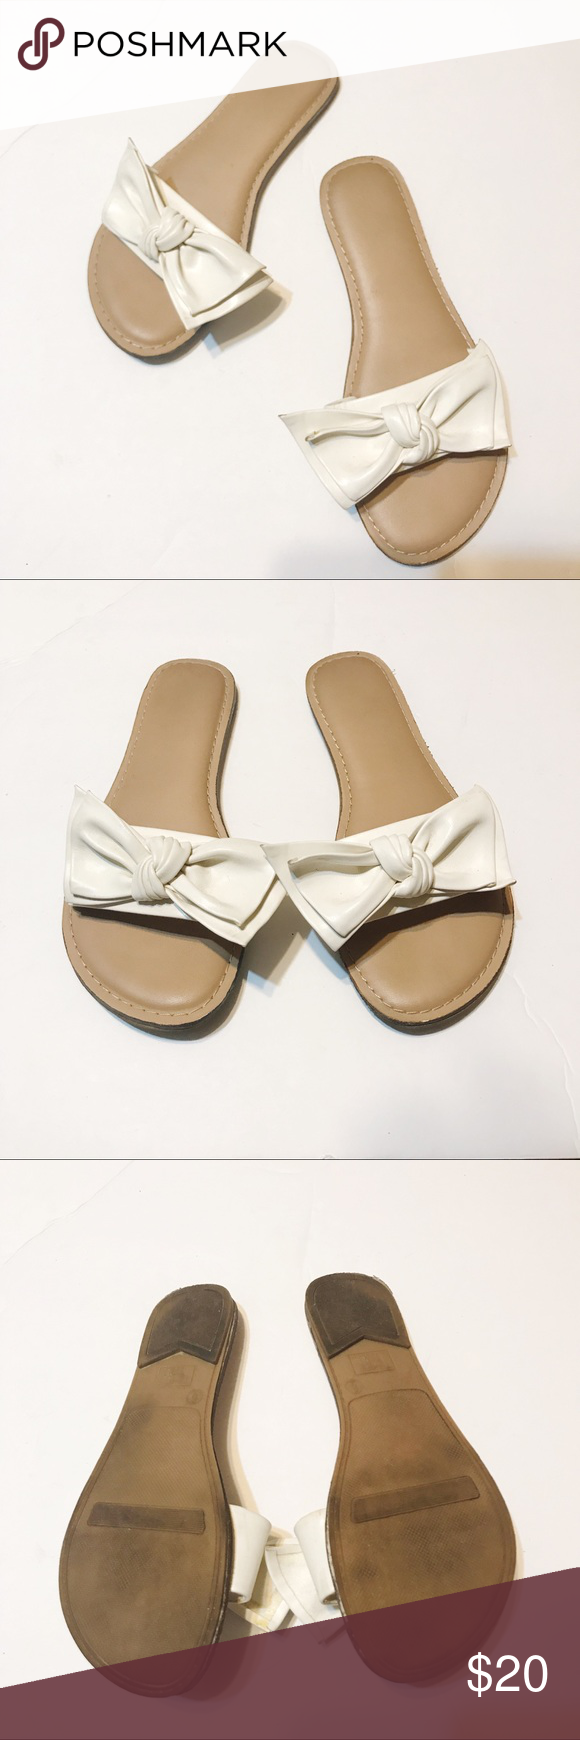 b61b6ca806b0 Big Bow Slide Sandals Size 6 Adorable slide sandals with big white bow!  Women s size 6. Good preloved condition. Man made material